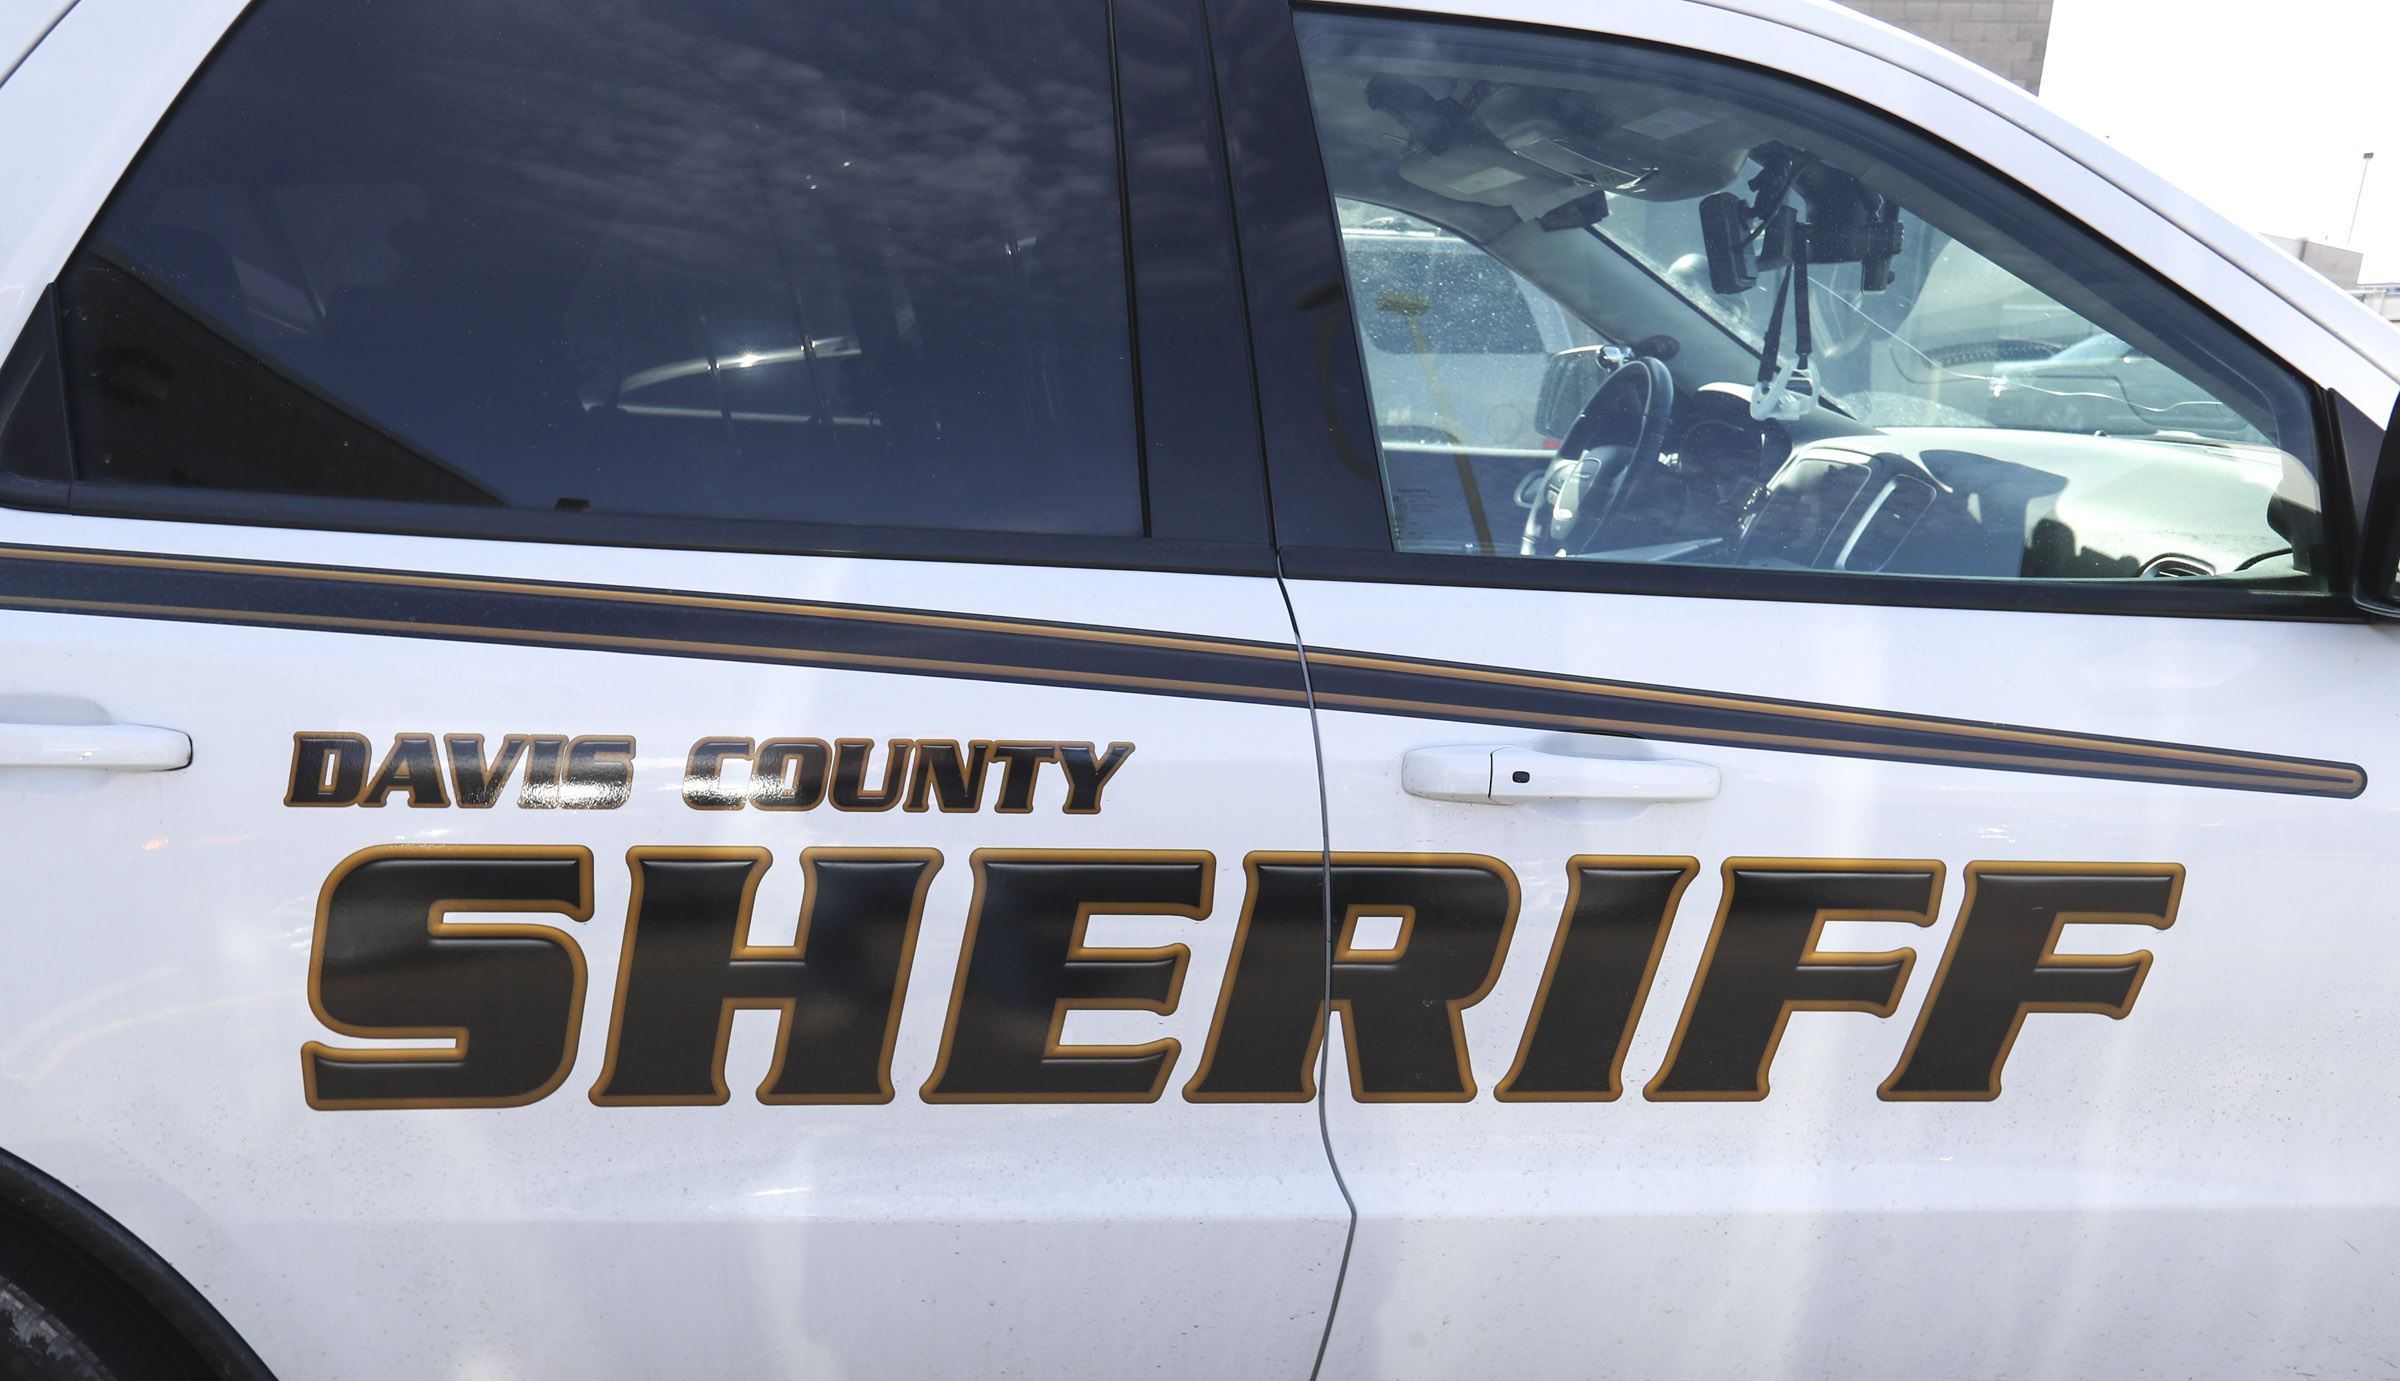 A Davis County Sheriff vehicle is pictured at the Davis County Jail in Farmington.